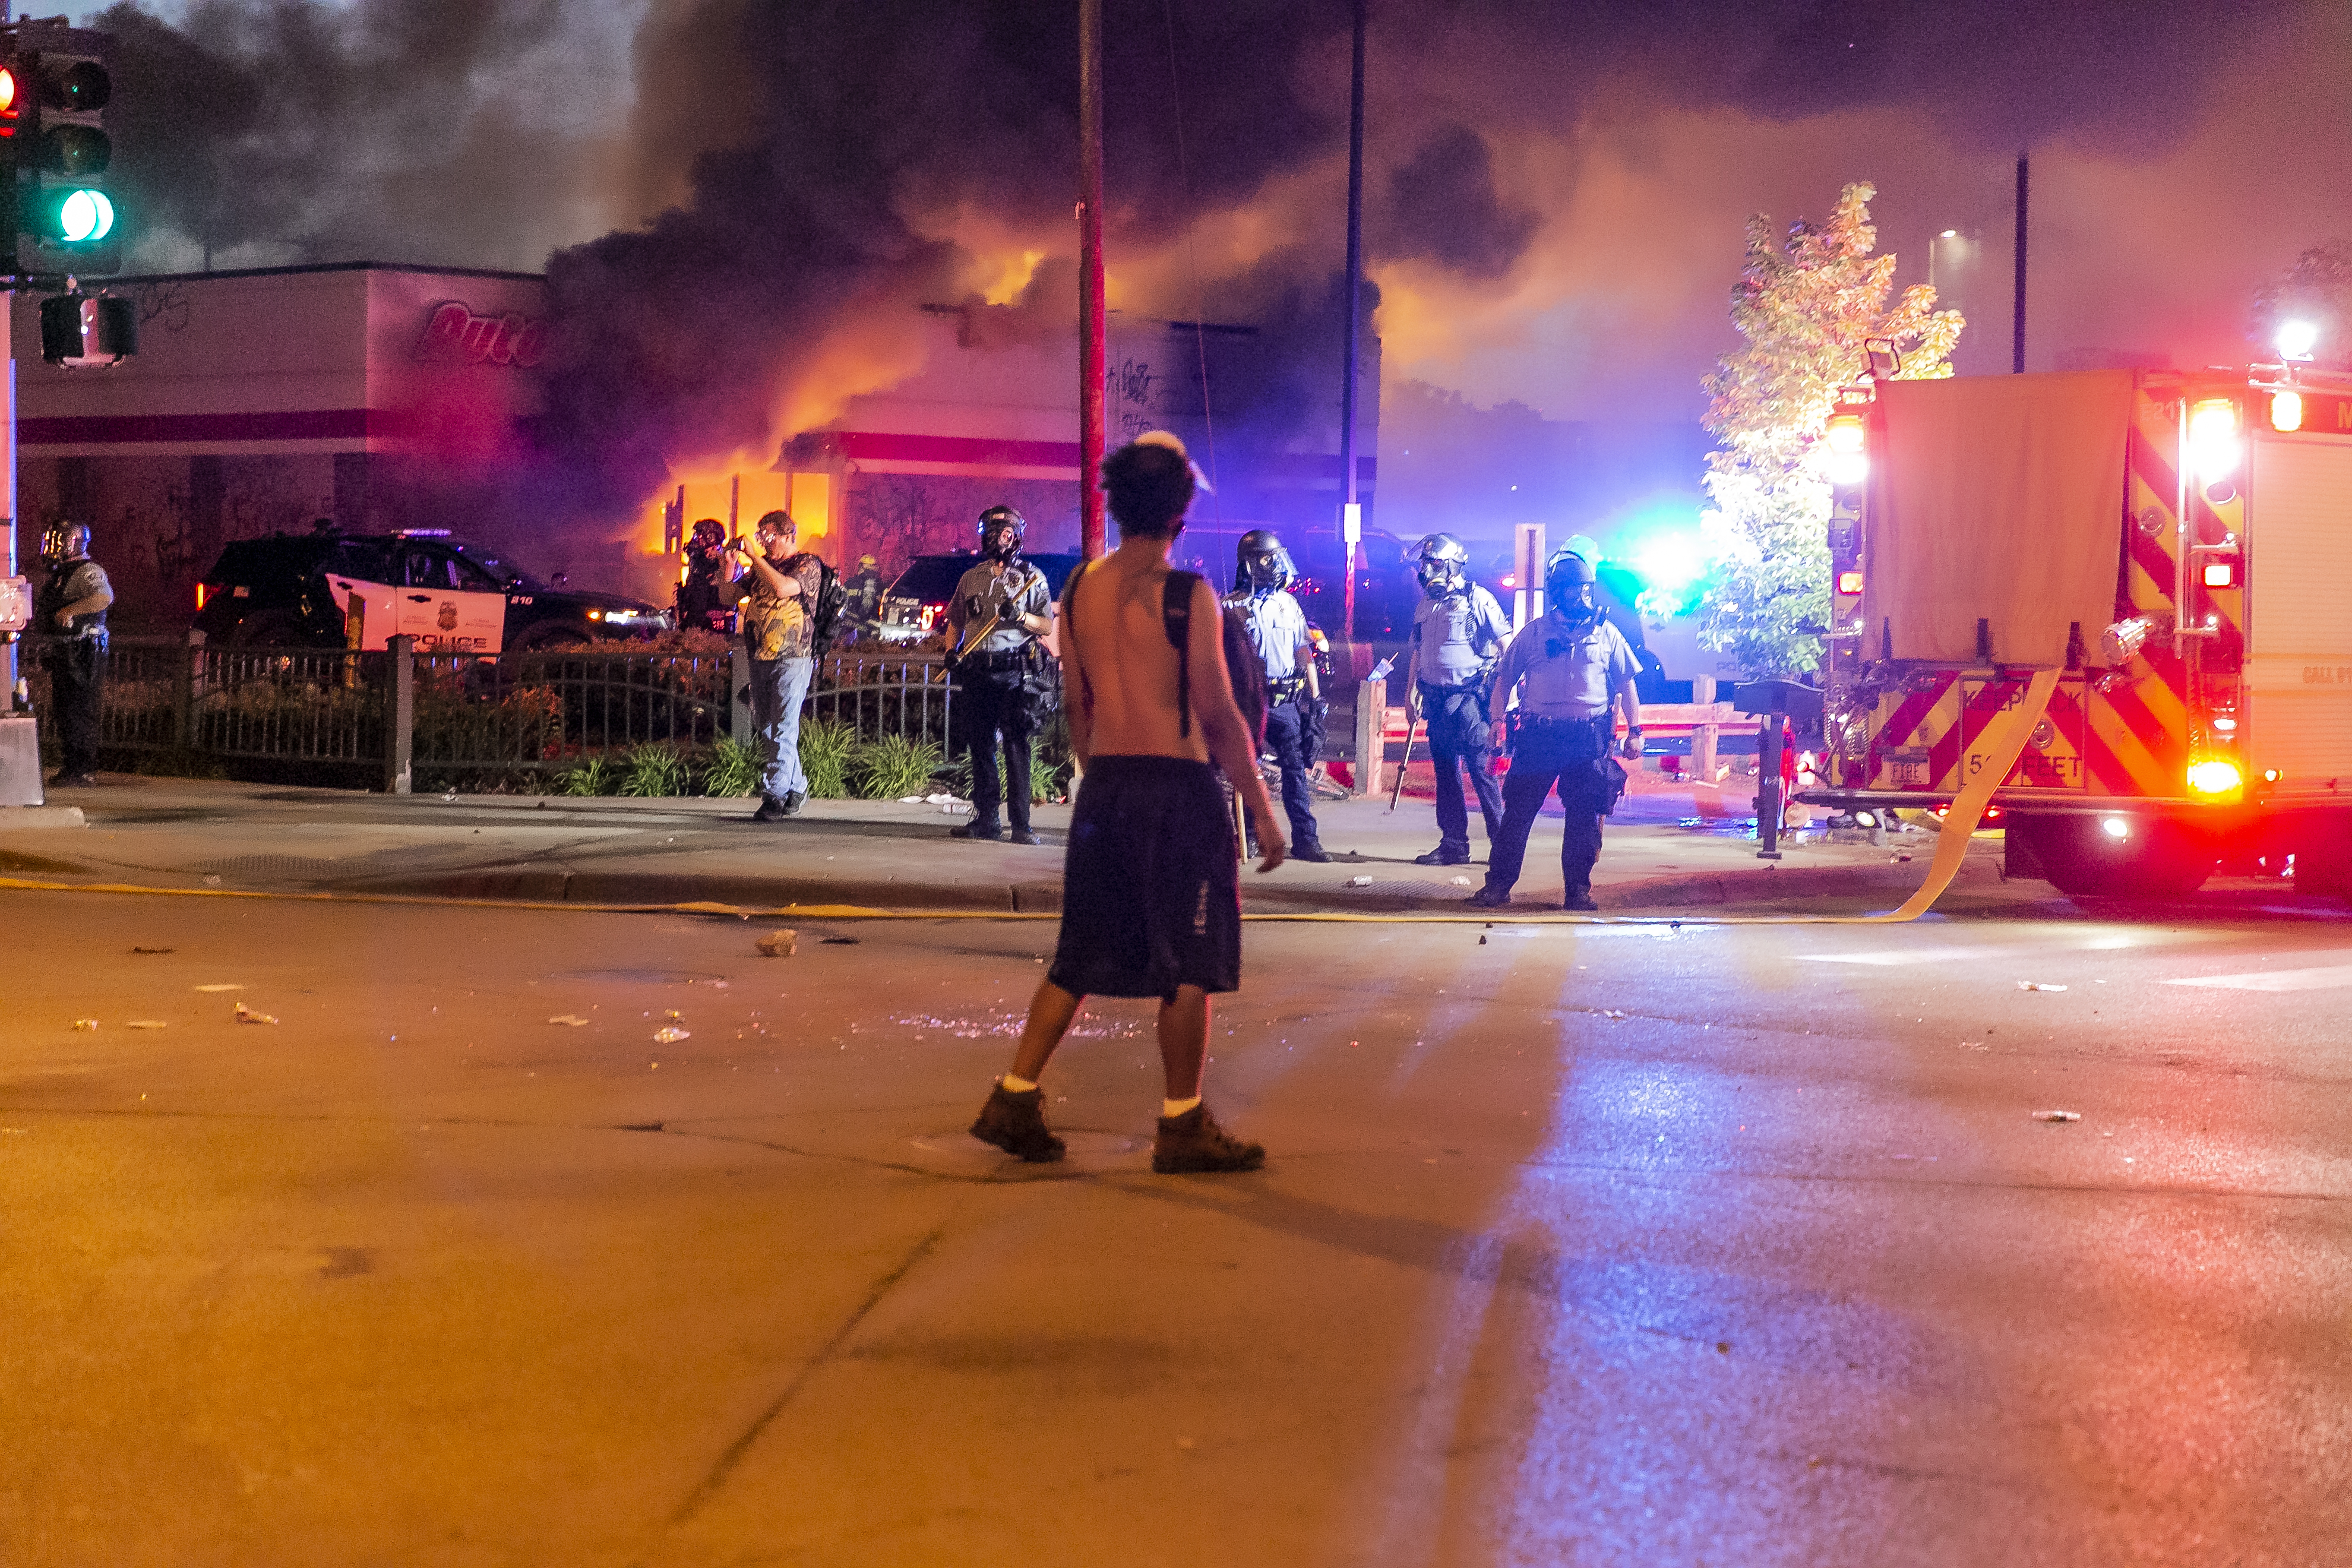 Buildings set alight and shops looted as Minneapolis protests turn violent